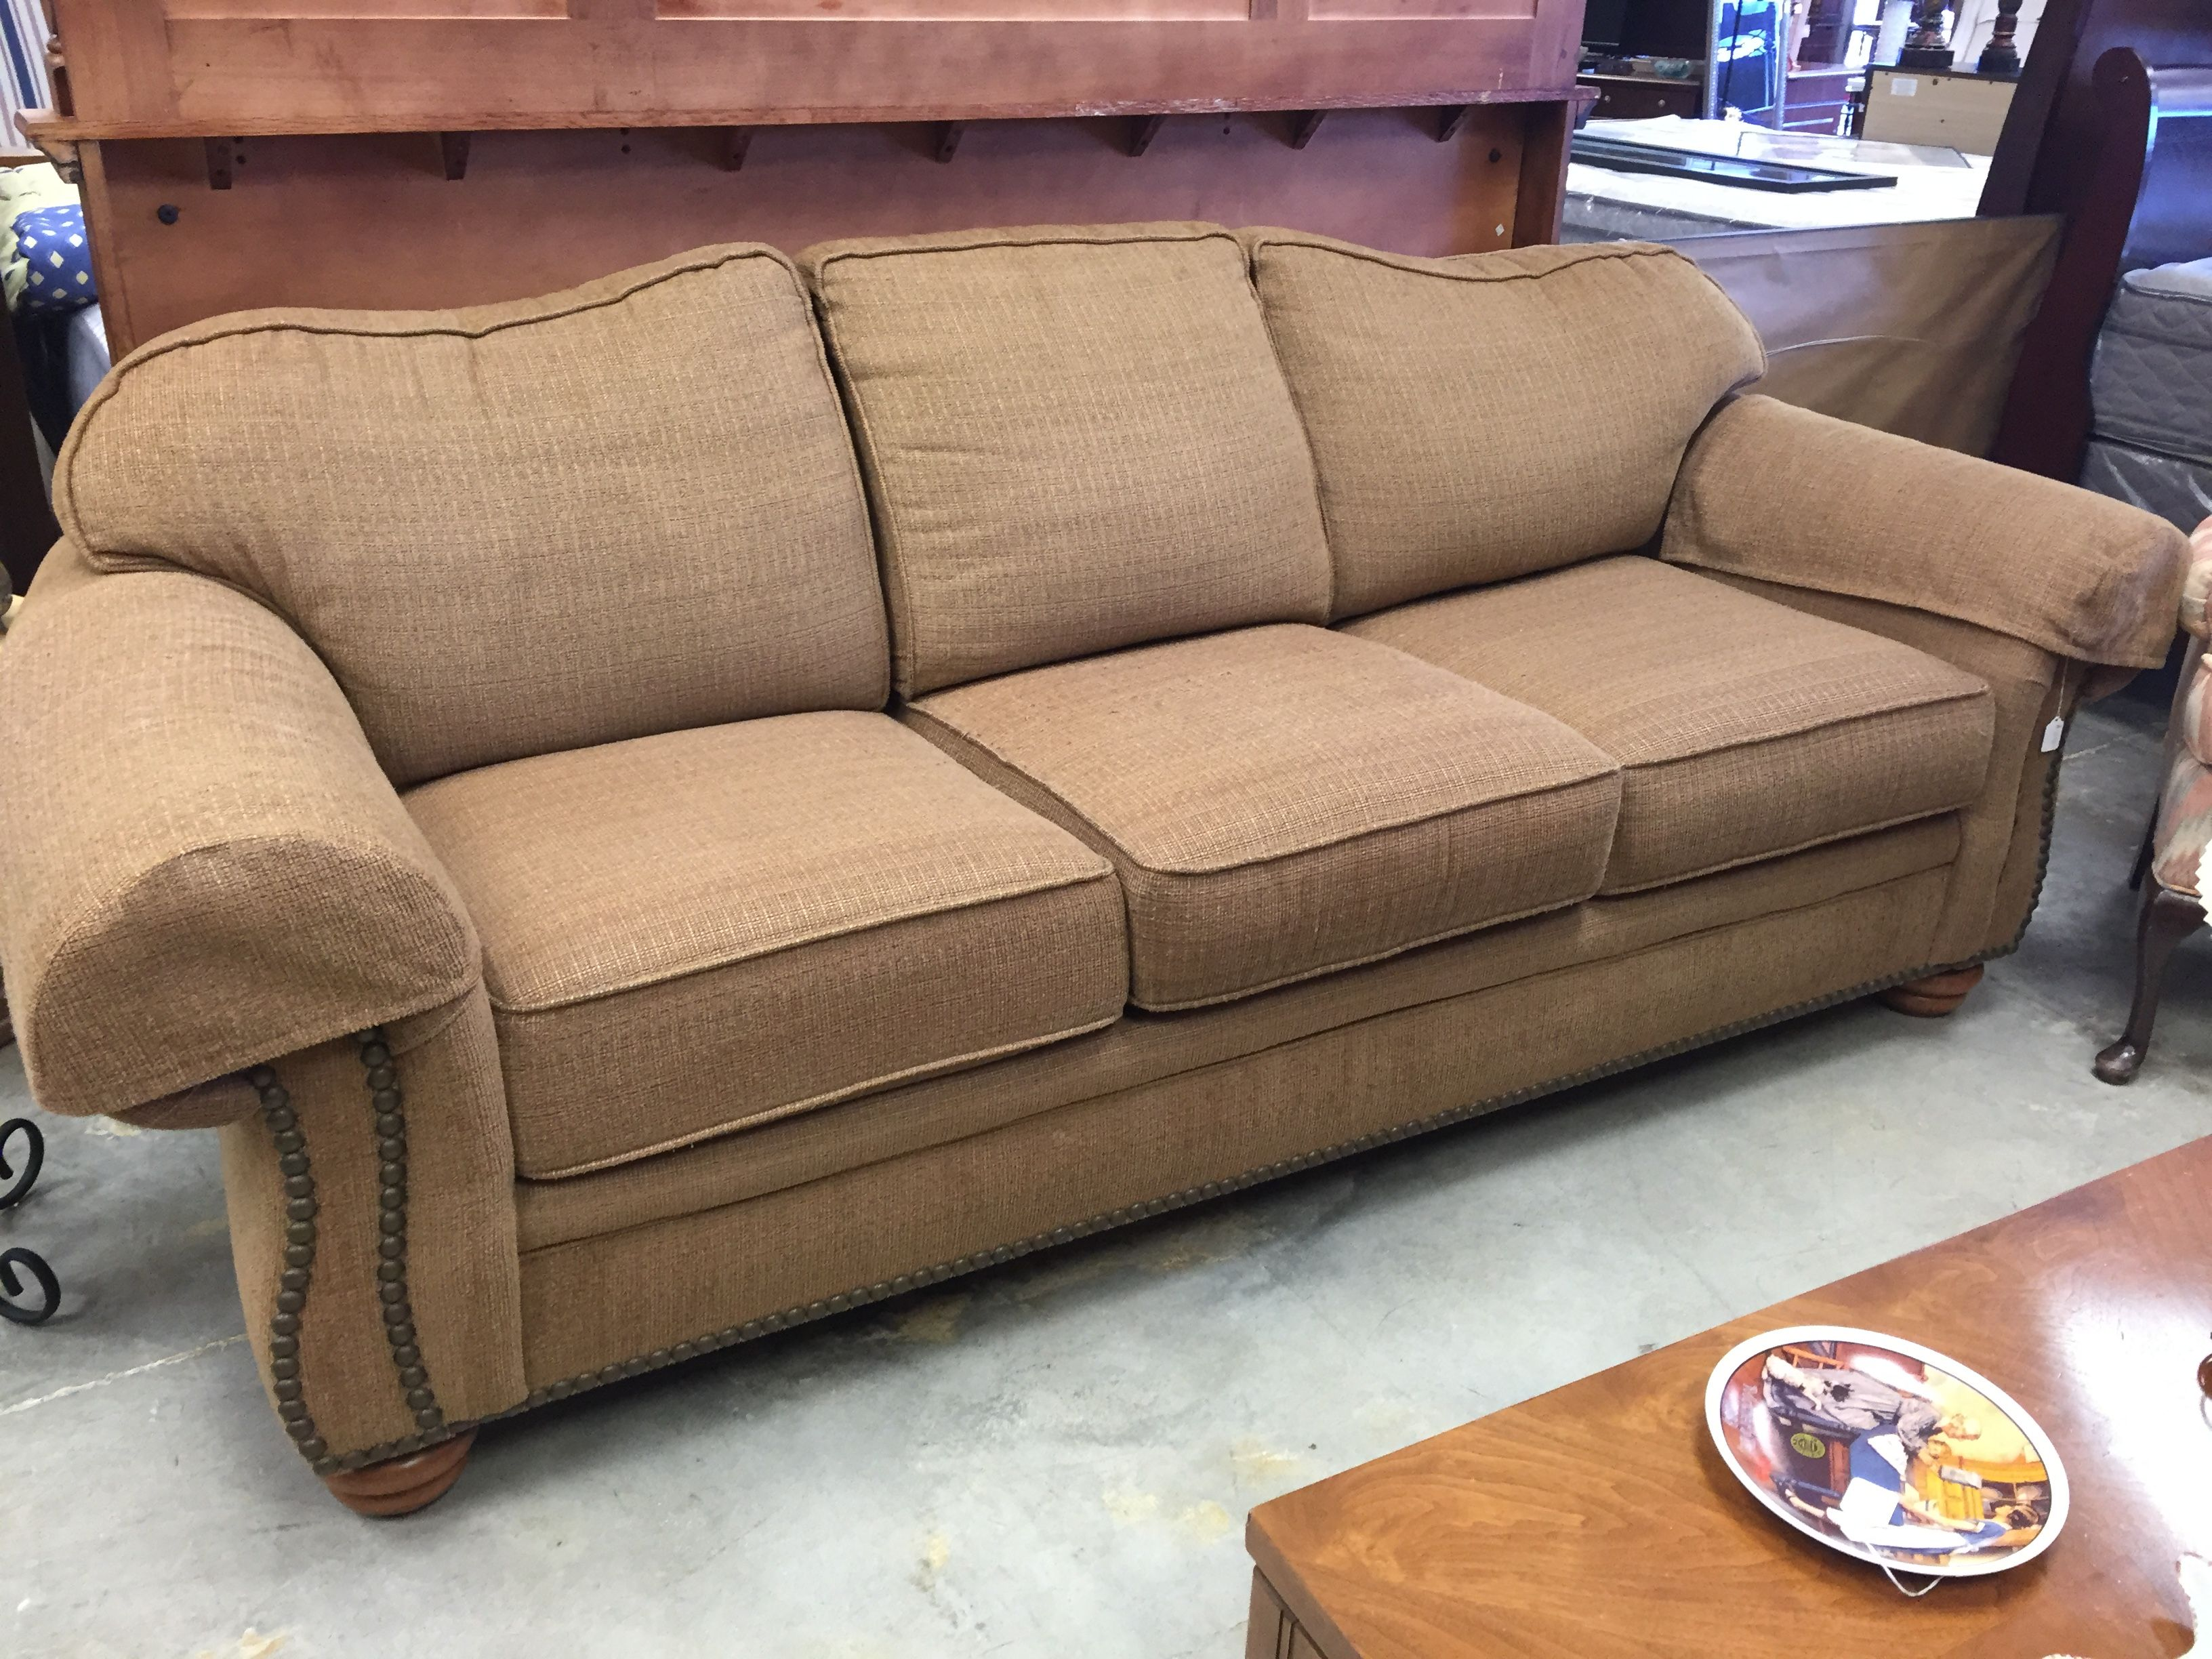 Neutral color Flexsteel sofa- $395   #home #house #apartment #furniture #mk #forsale #sofa #couch #livingroom #design #decor